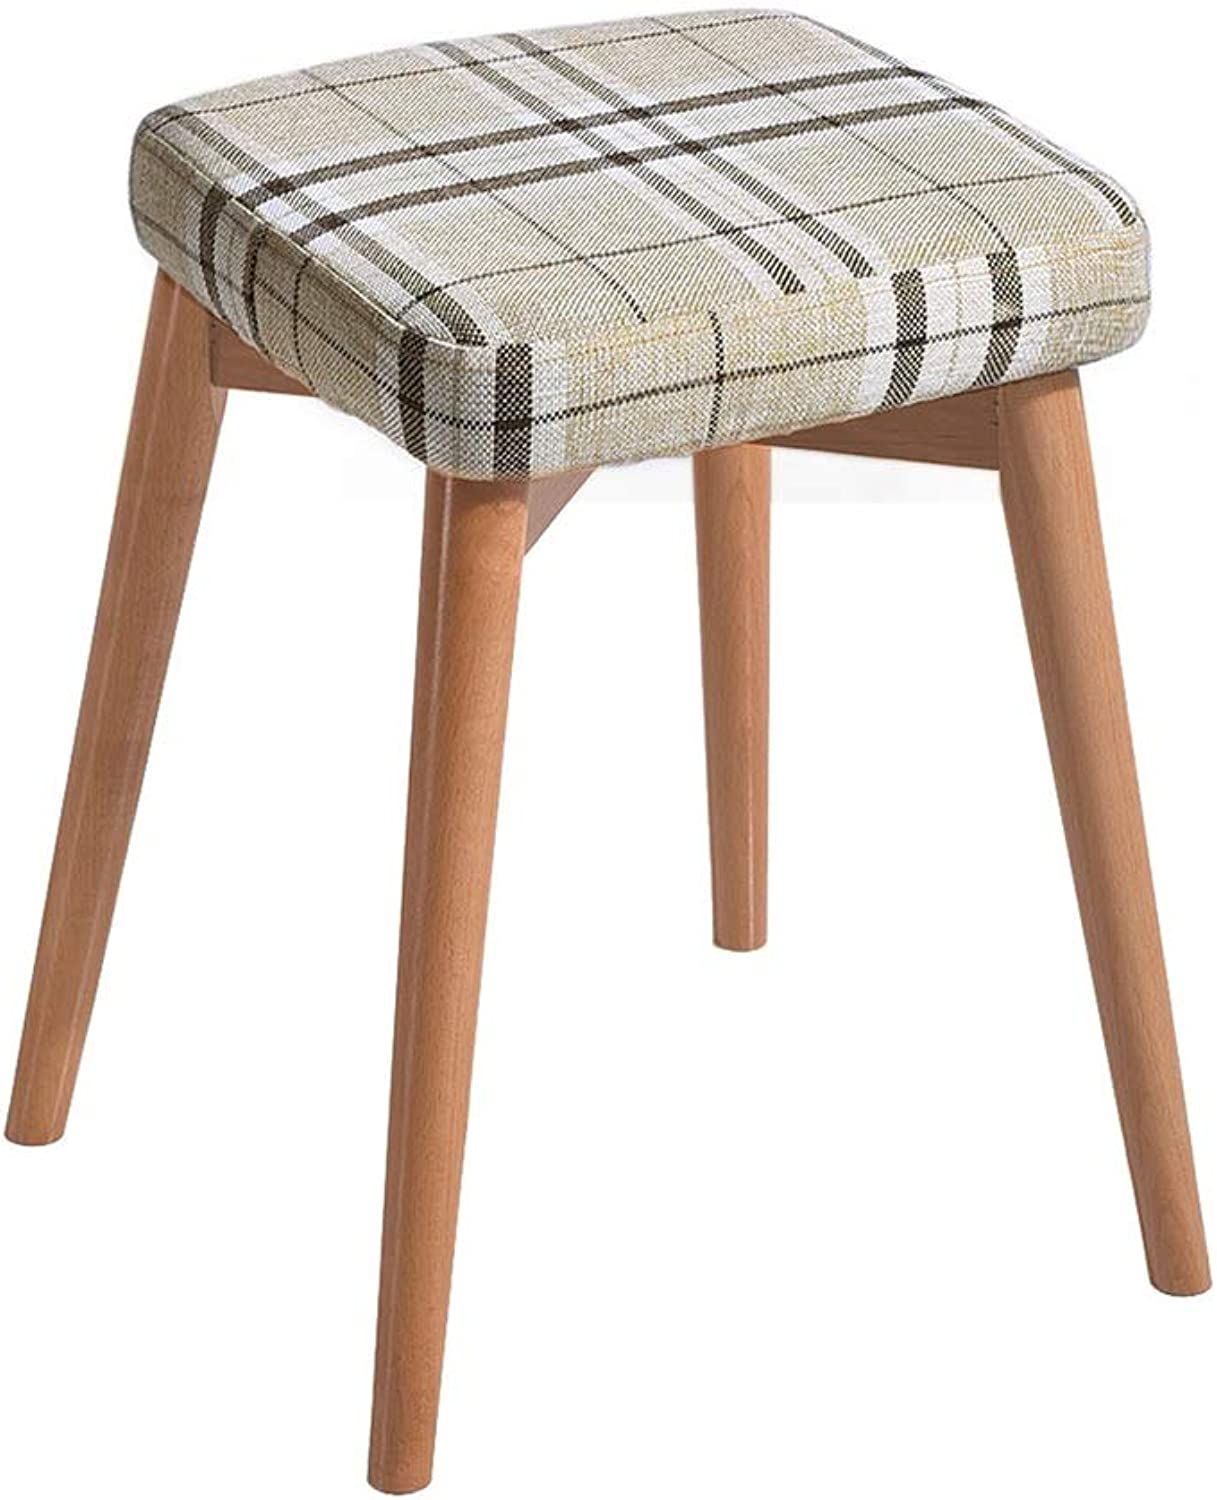 Solid Wood Dressing Stool Chair Creative Fashion Bench Nordic Upholstered Stool 4 Legs and Cotton Linen Cover for Kitchen Living Room Bathroom High Resilience Sponges Seat Height 75 cm